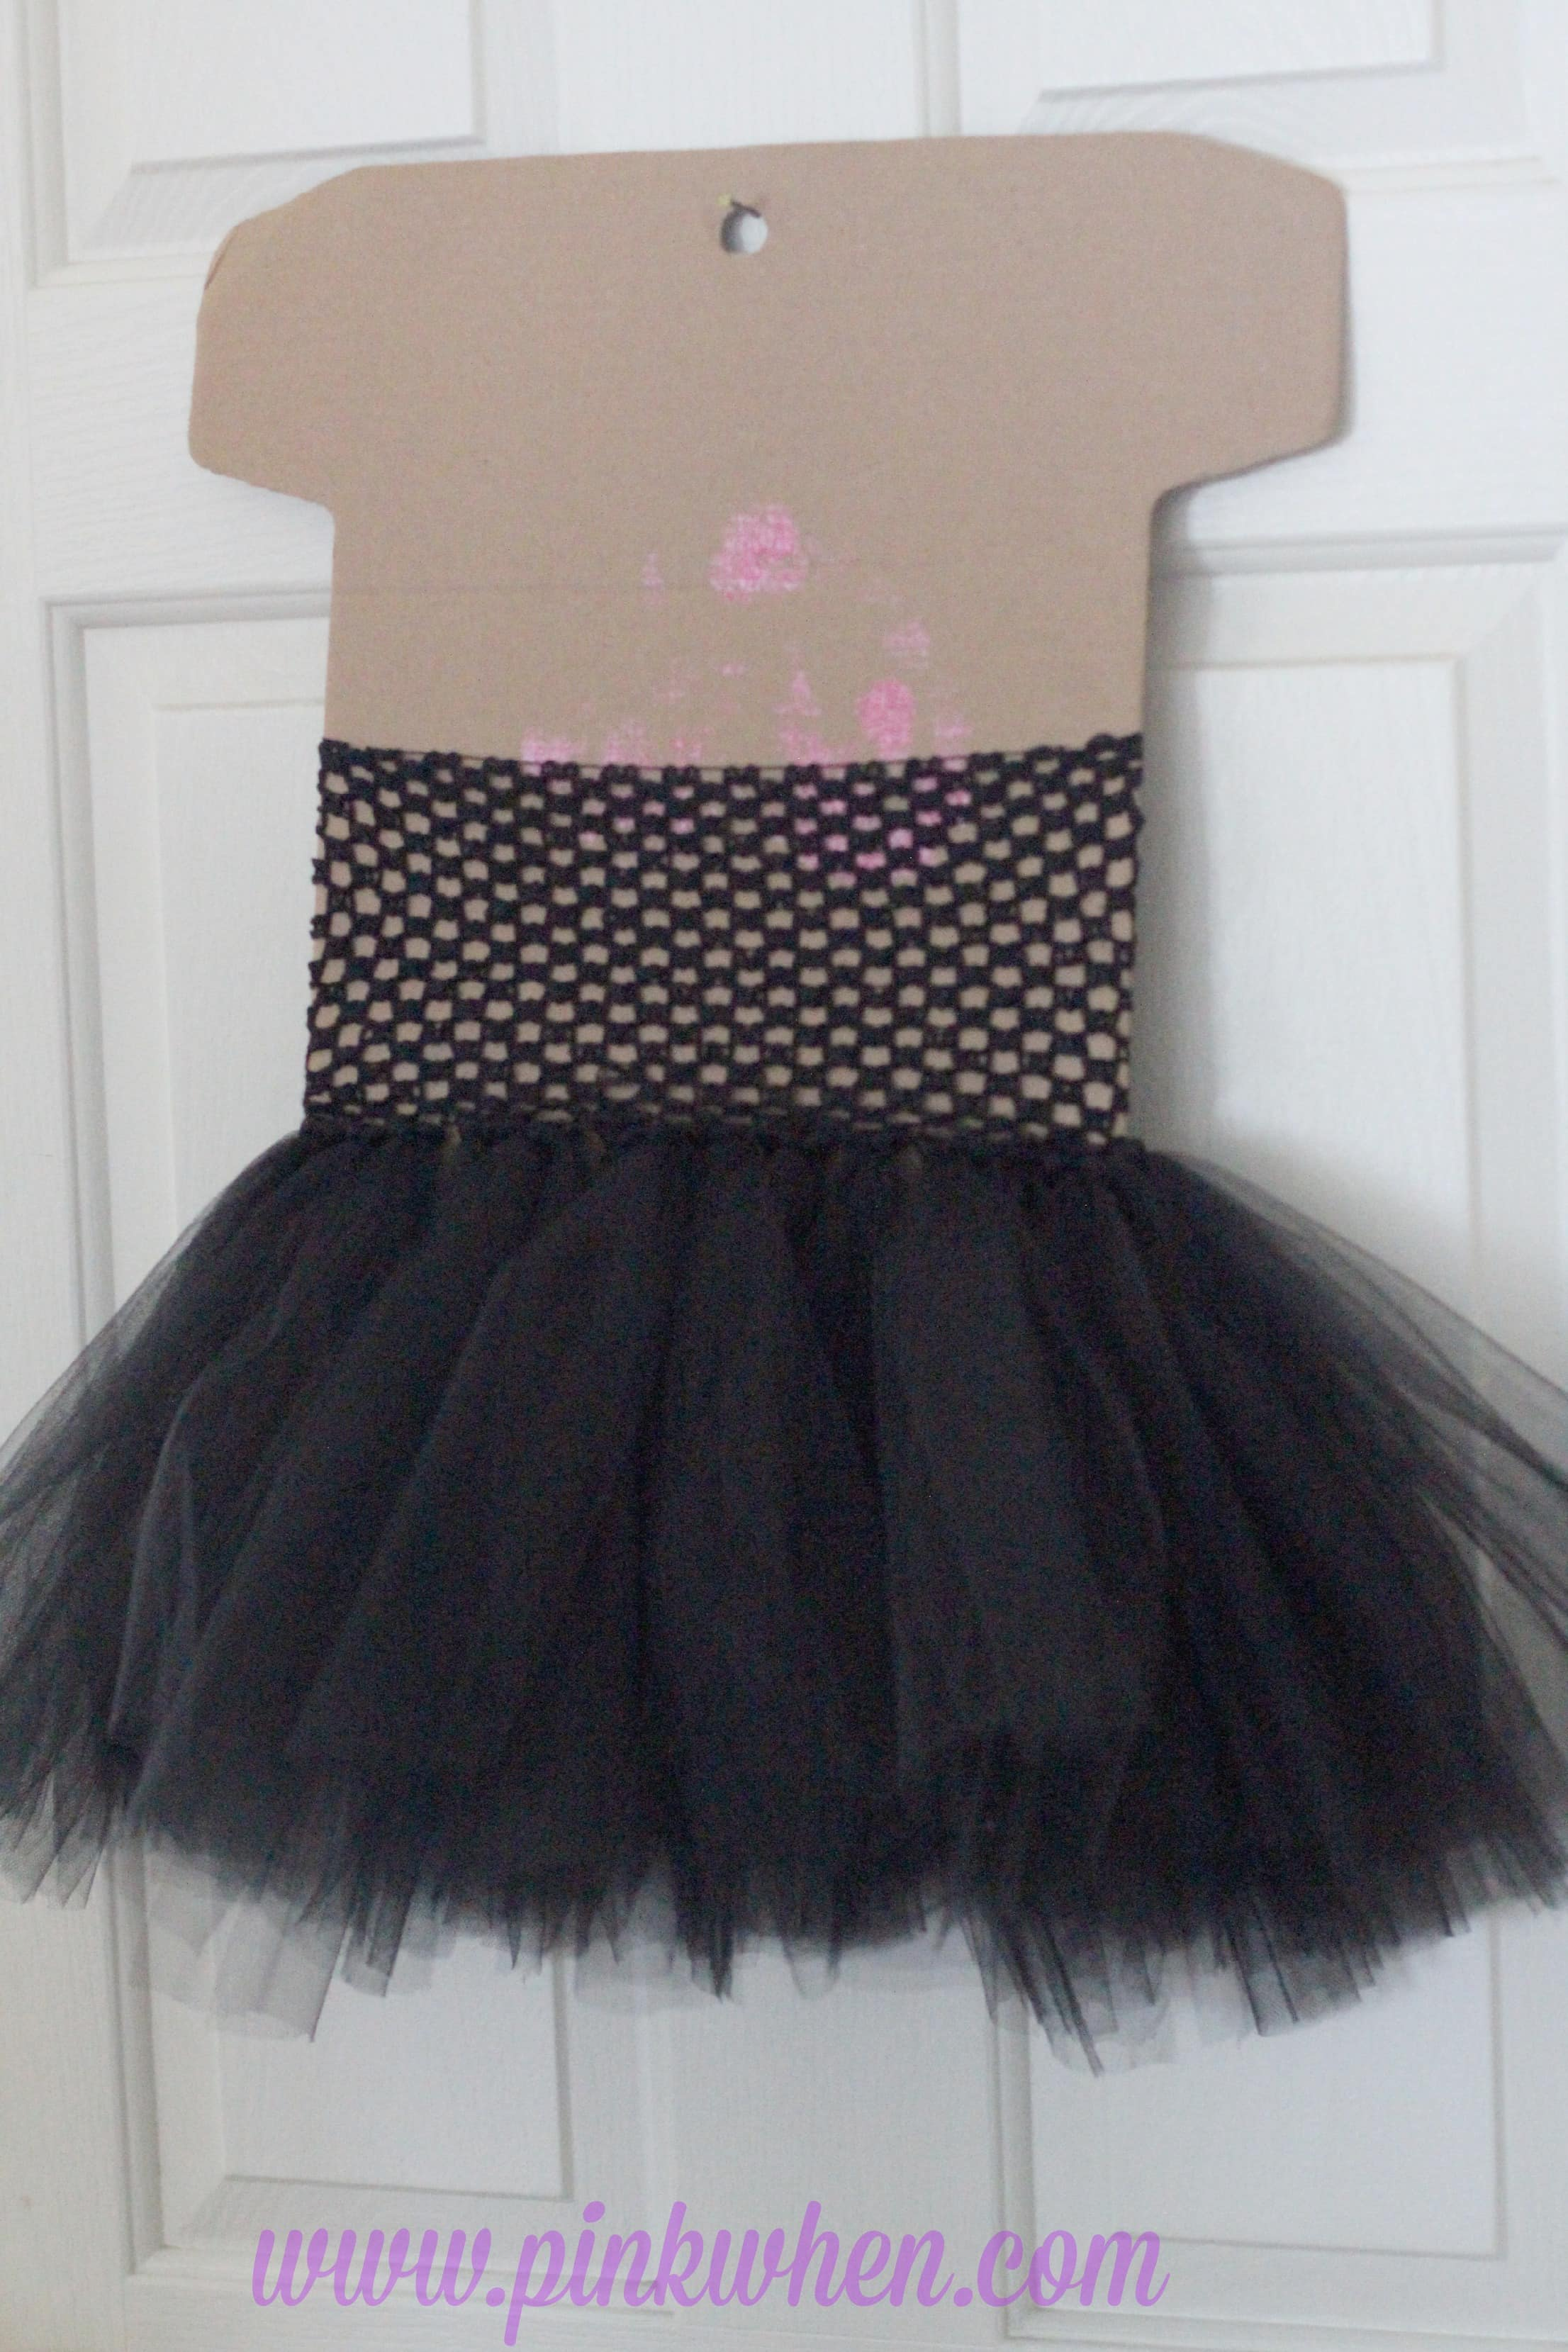 DIY No Sew Maleficent Costume Tulle Skirt